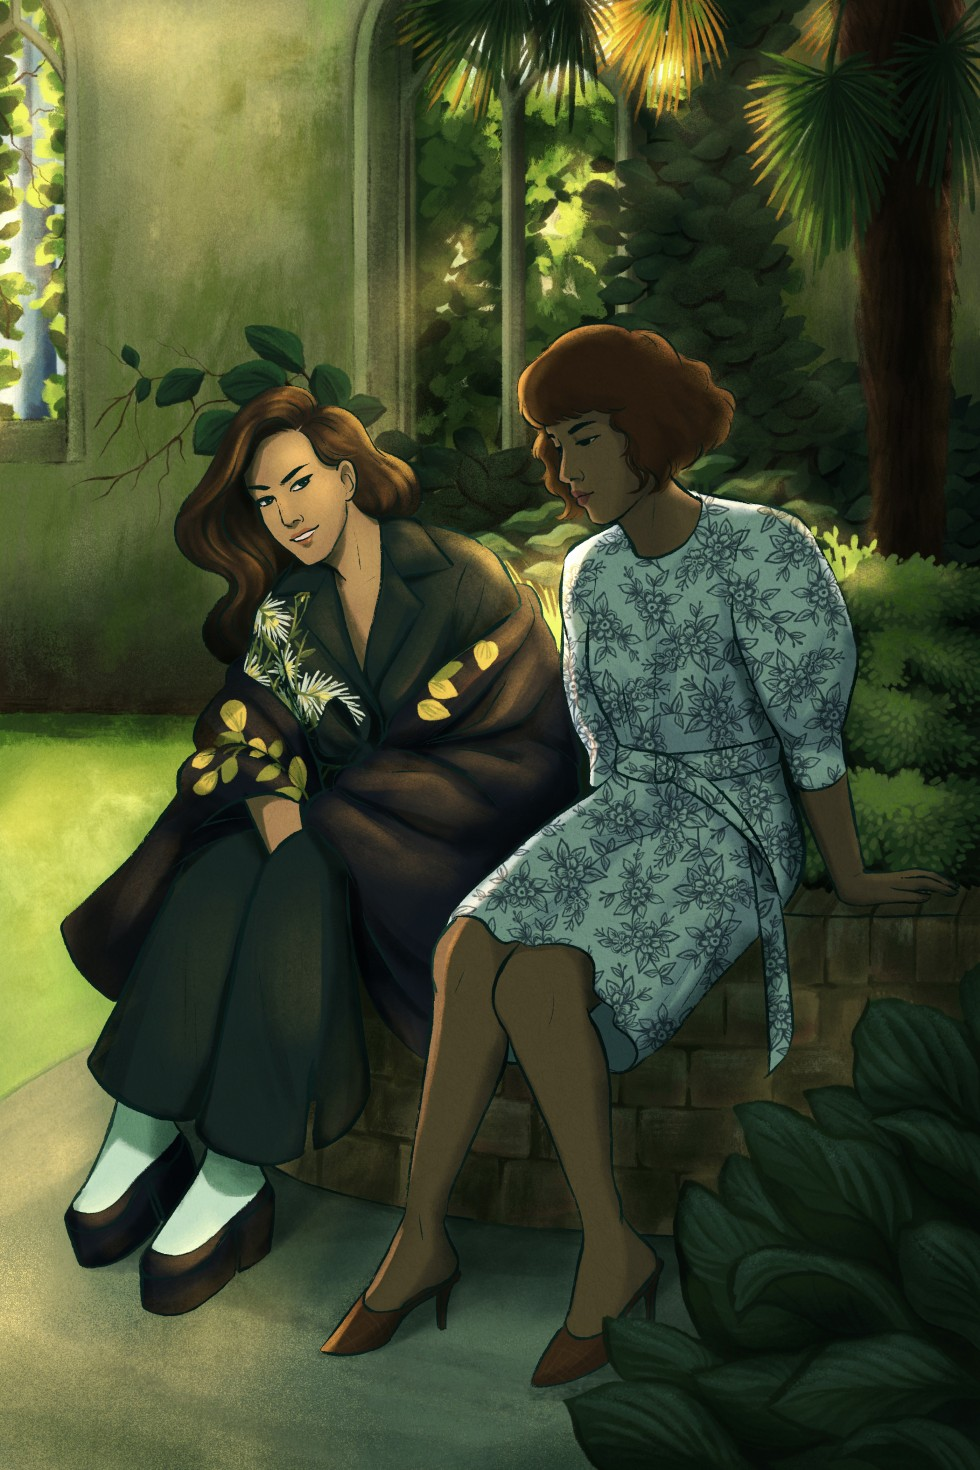 A digital art piece that features two figures sitting on a brick railing in a sunny park. The figure on the left has light skin and long dark wavy hair. She is wearing a black jumpsuit and coat with white, green, and yellow floral embroidery and white and